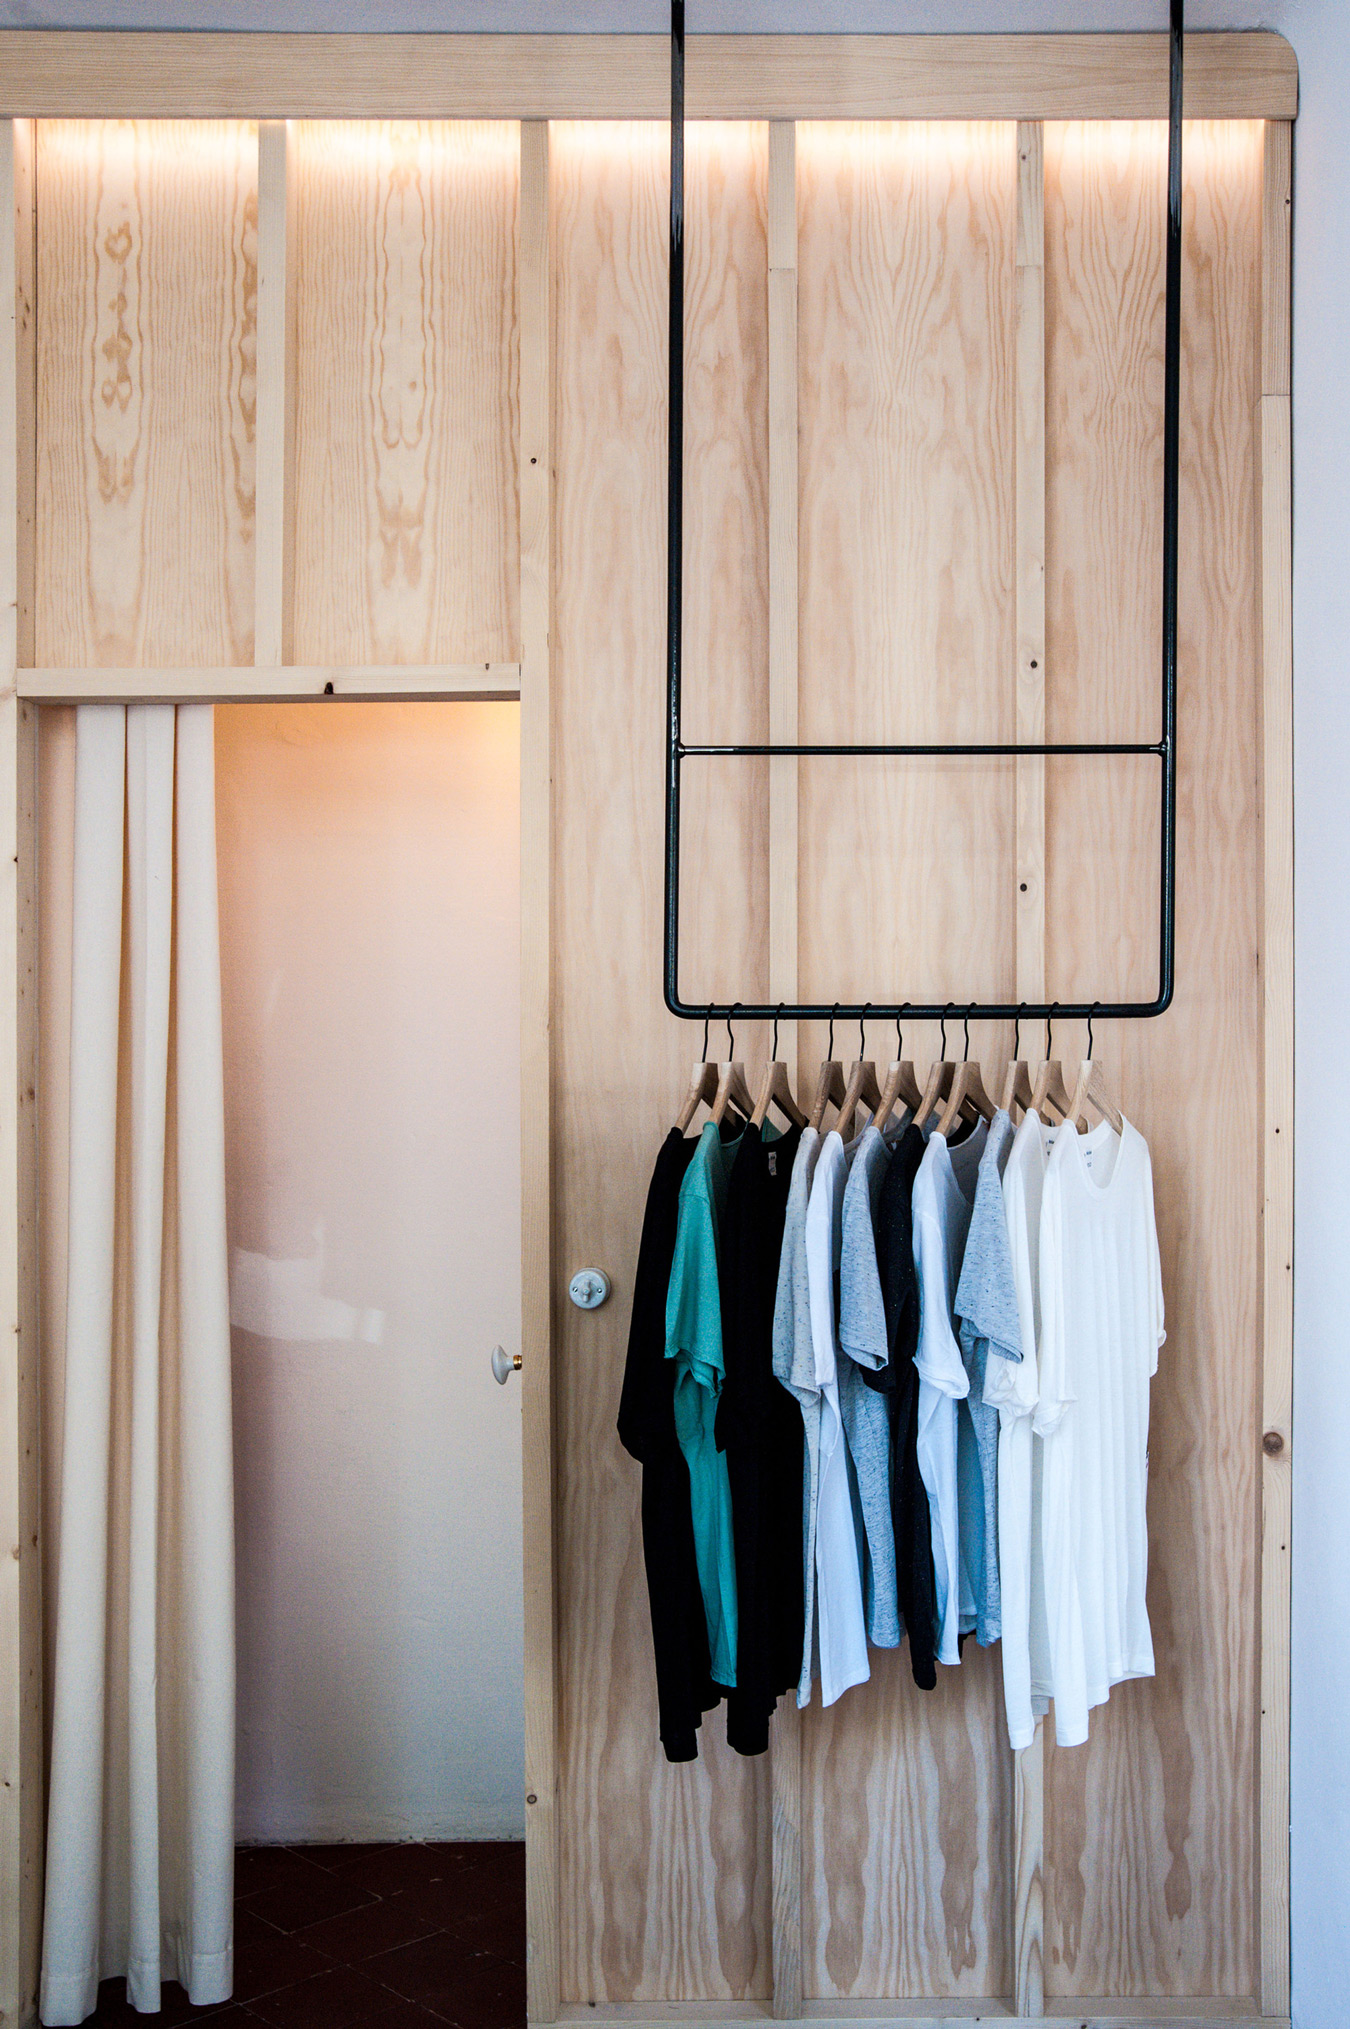 Shop-and-Exhibition-Space-in-Marseille-Atelier-M3a-Architectes-10.jpg